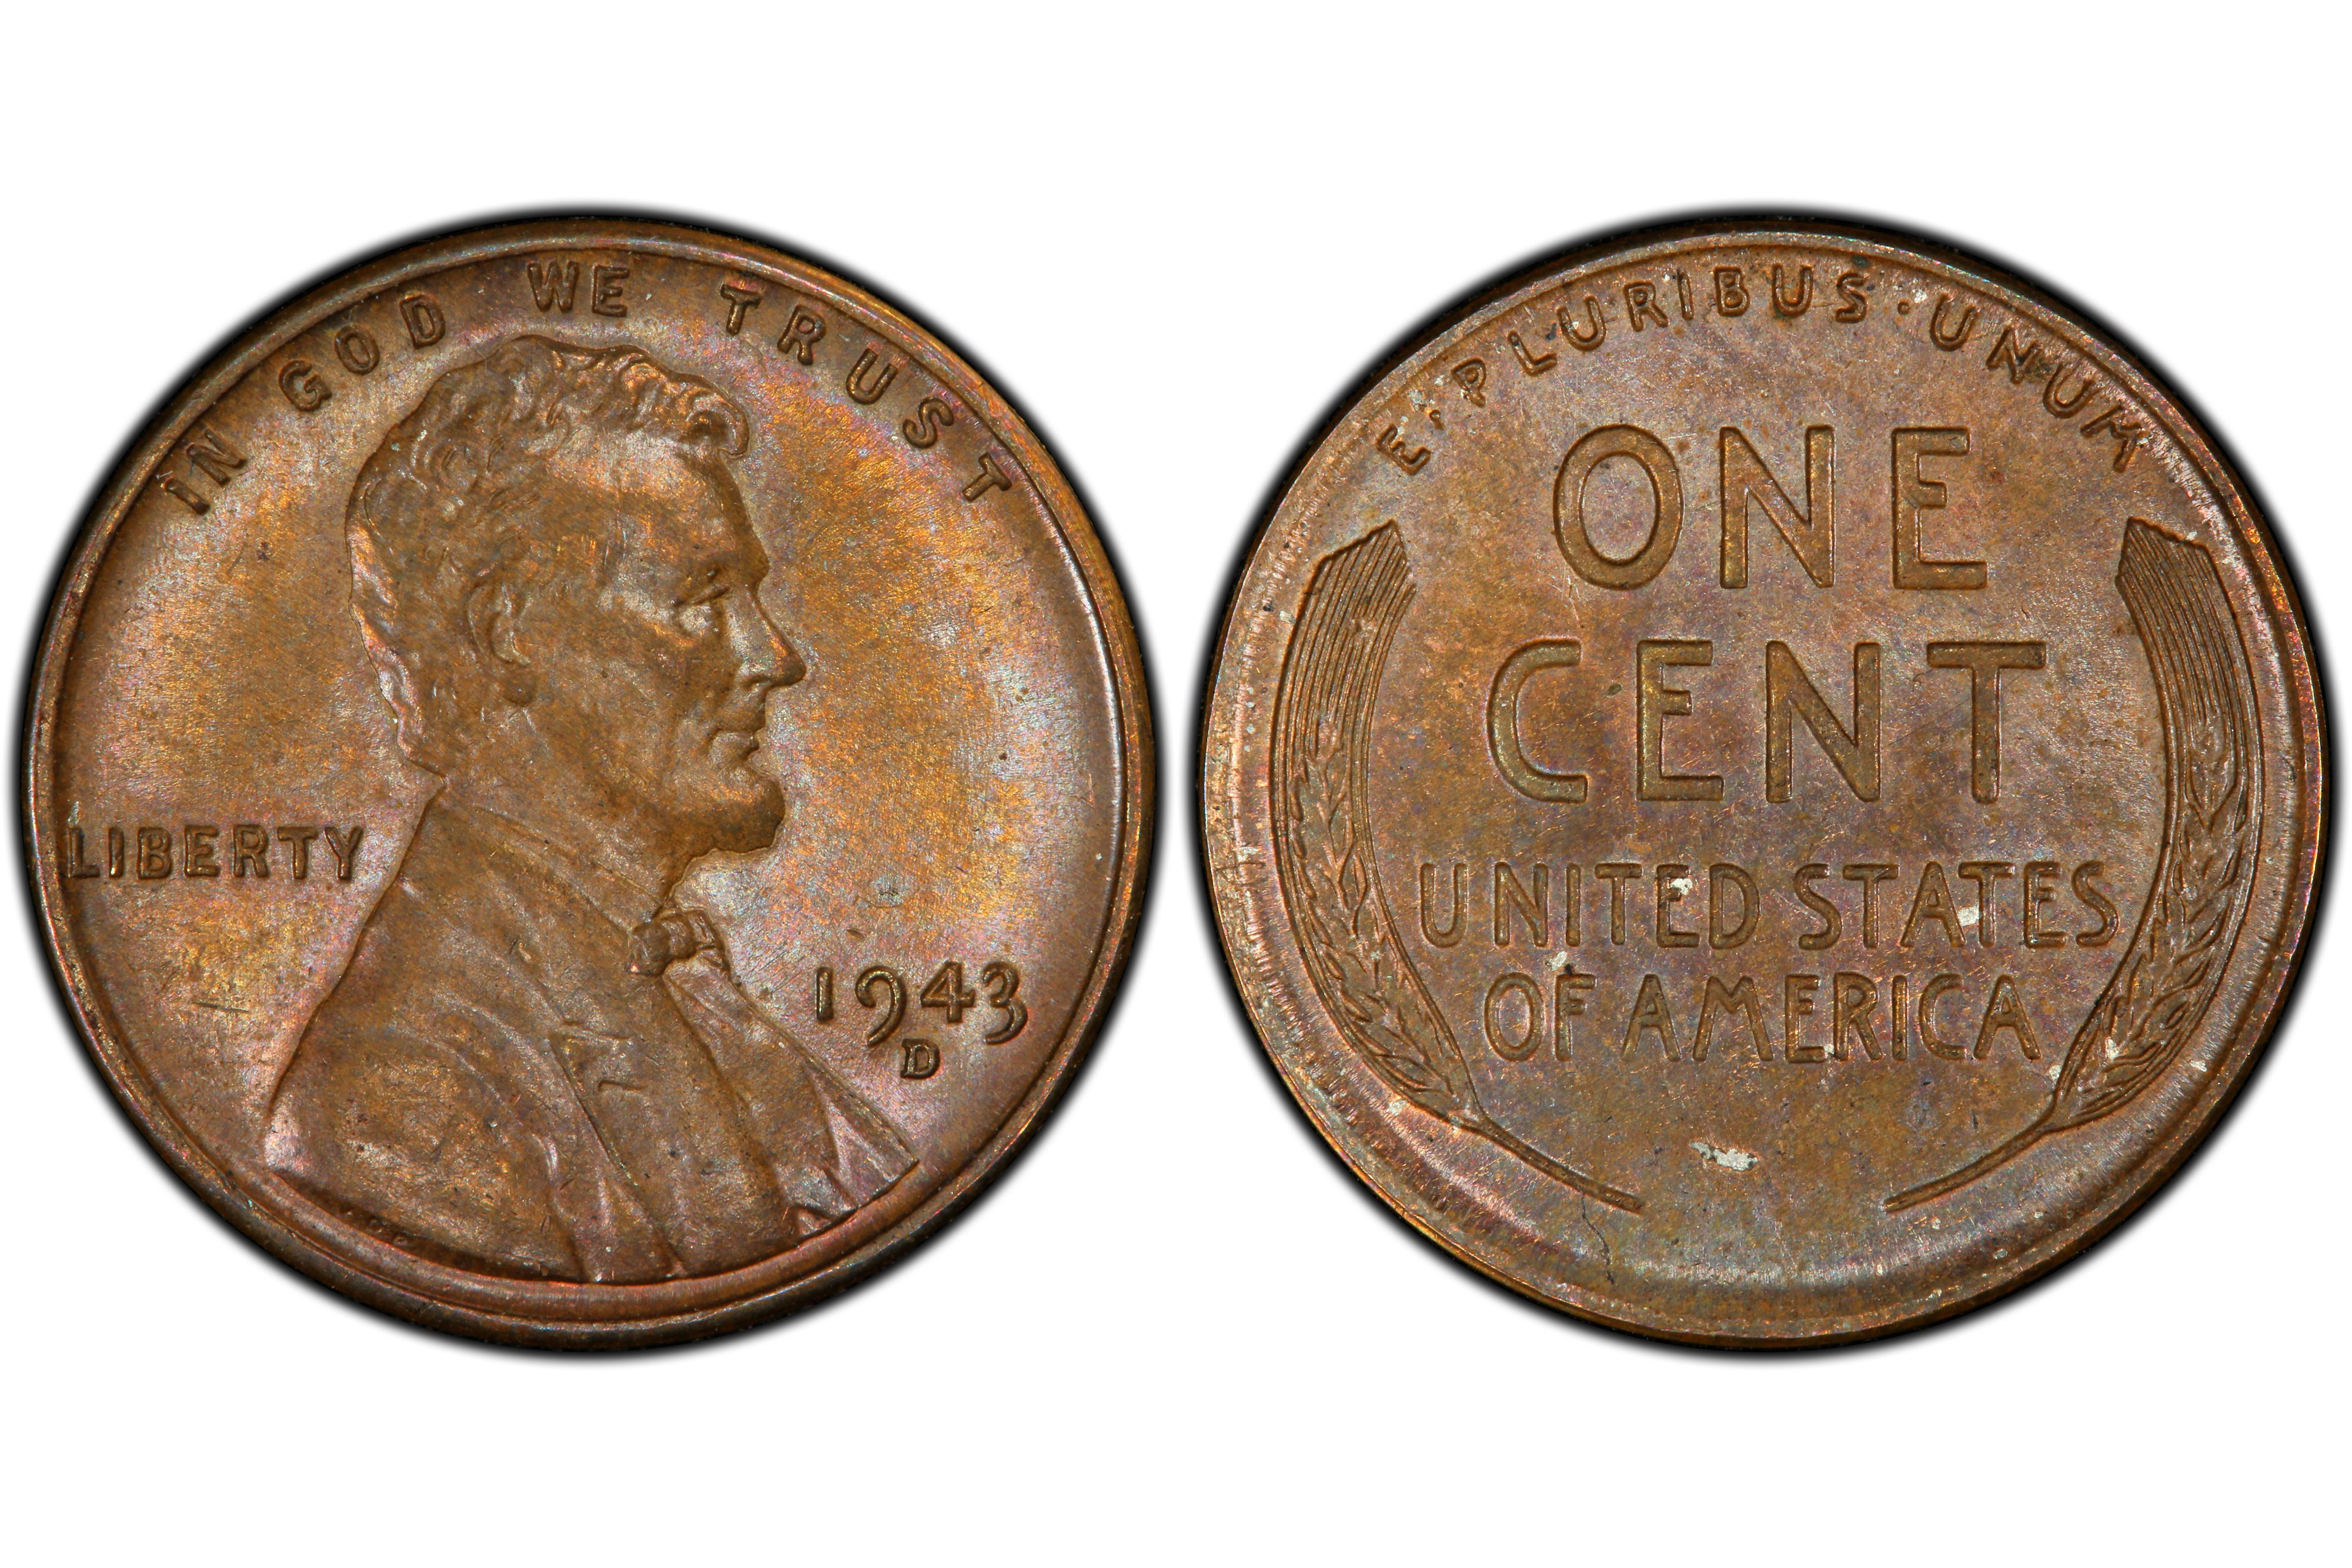 The Top 15 Most Valuable Pennies Valuable Pennies Rare Coins Worth Money Valuable Wheat Pennies